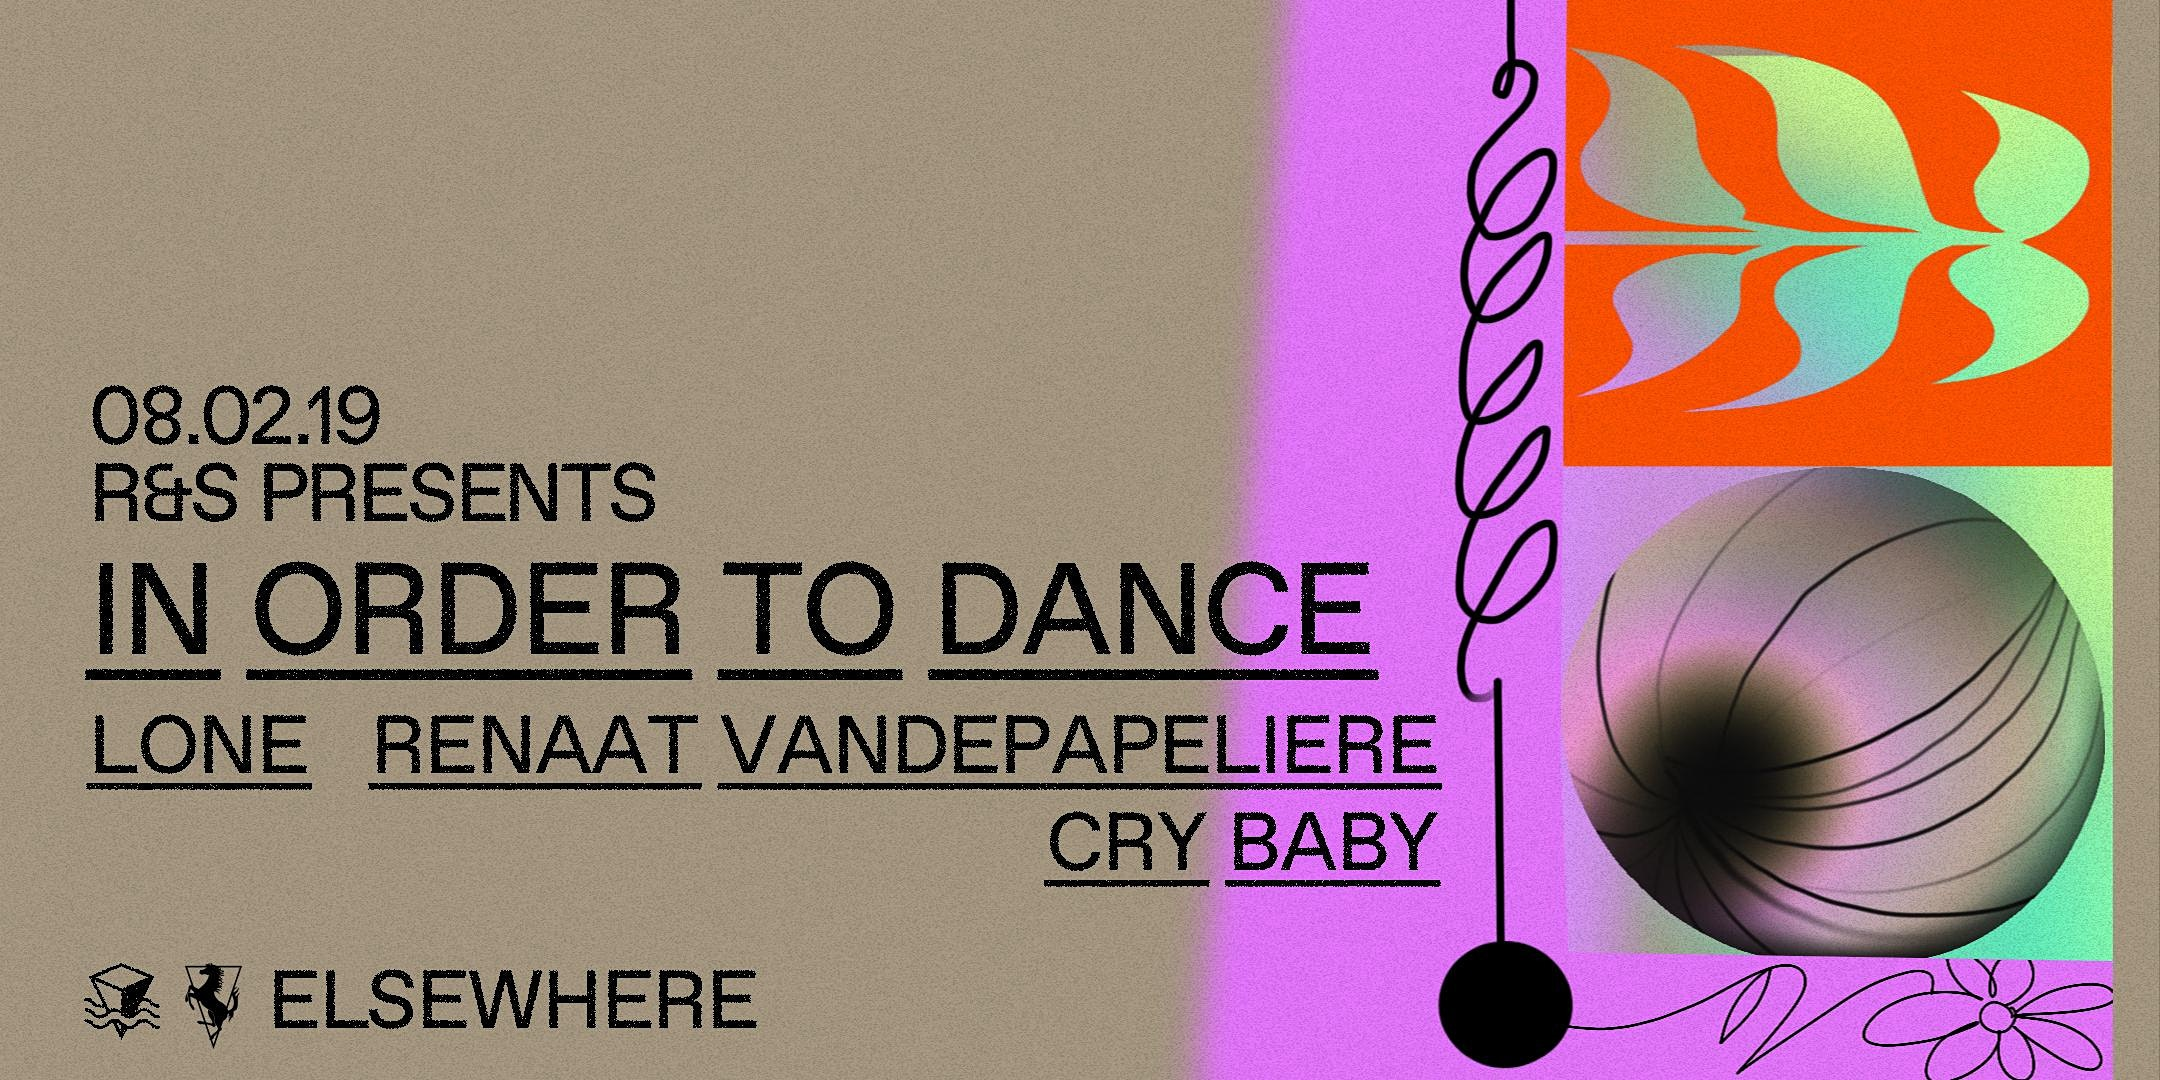 R&S Presents: In Order To Dance w/ Lone, Renaat Vandepapeliere & Cry Baby